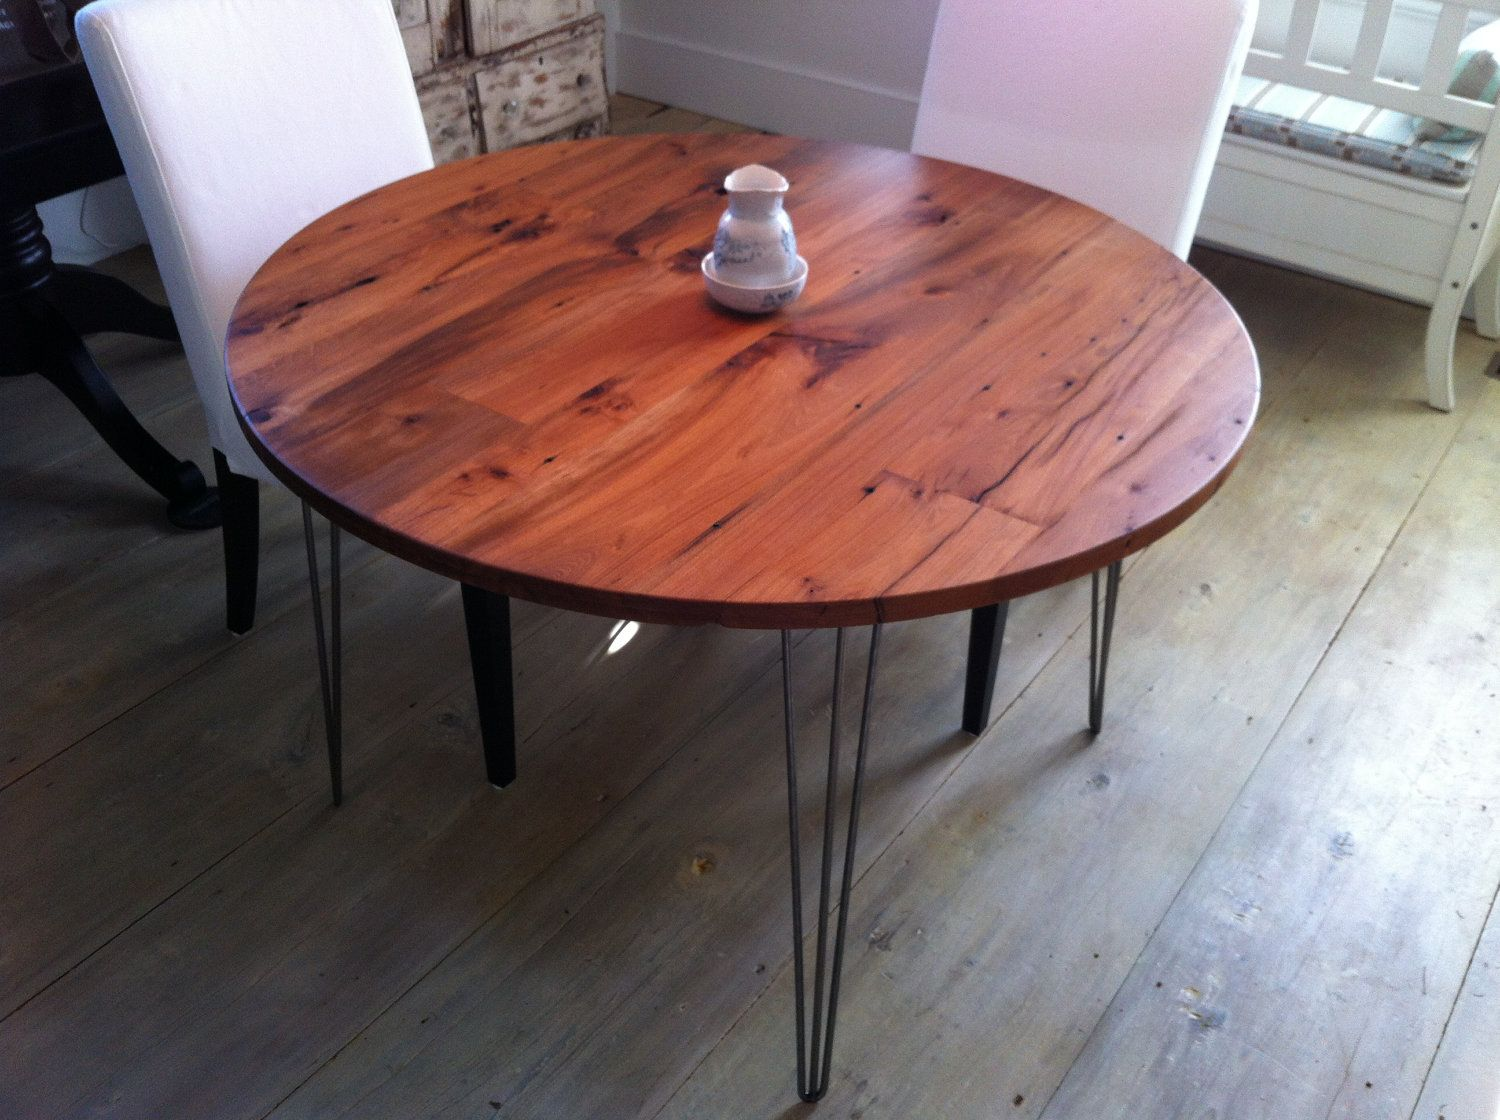 Modern Industrial Round Dining Table Cafe Or Bistro Featuring Reclaimed Barnwood Top With